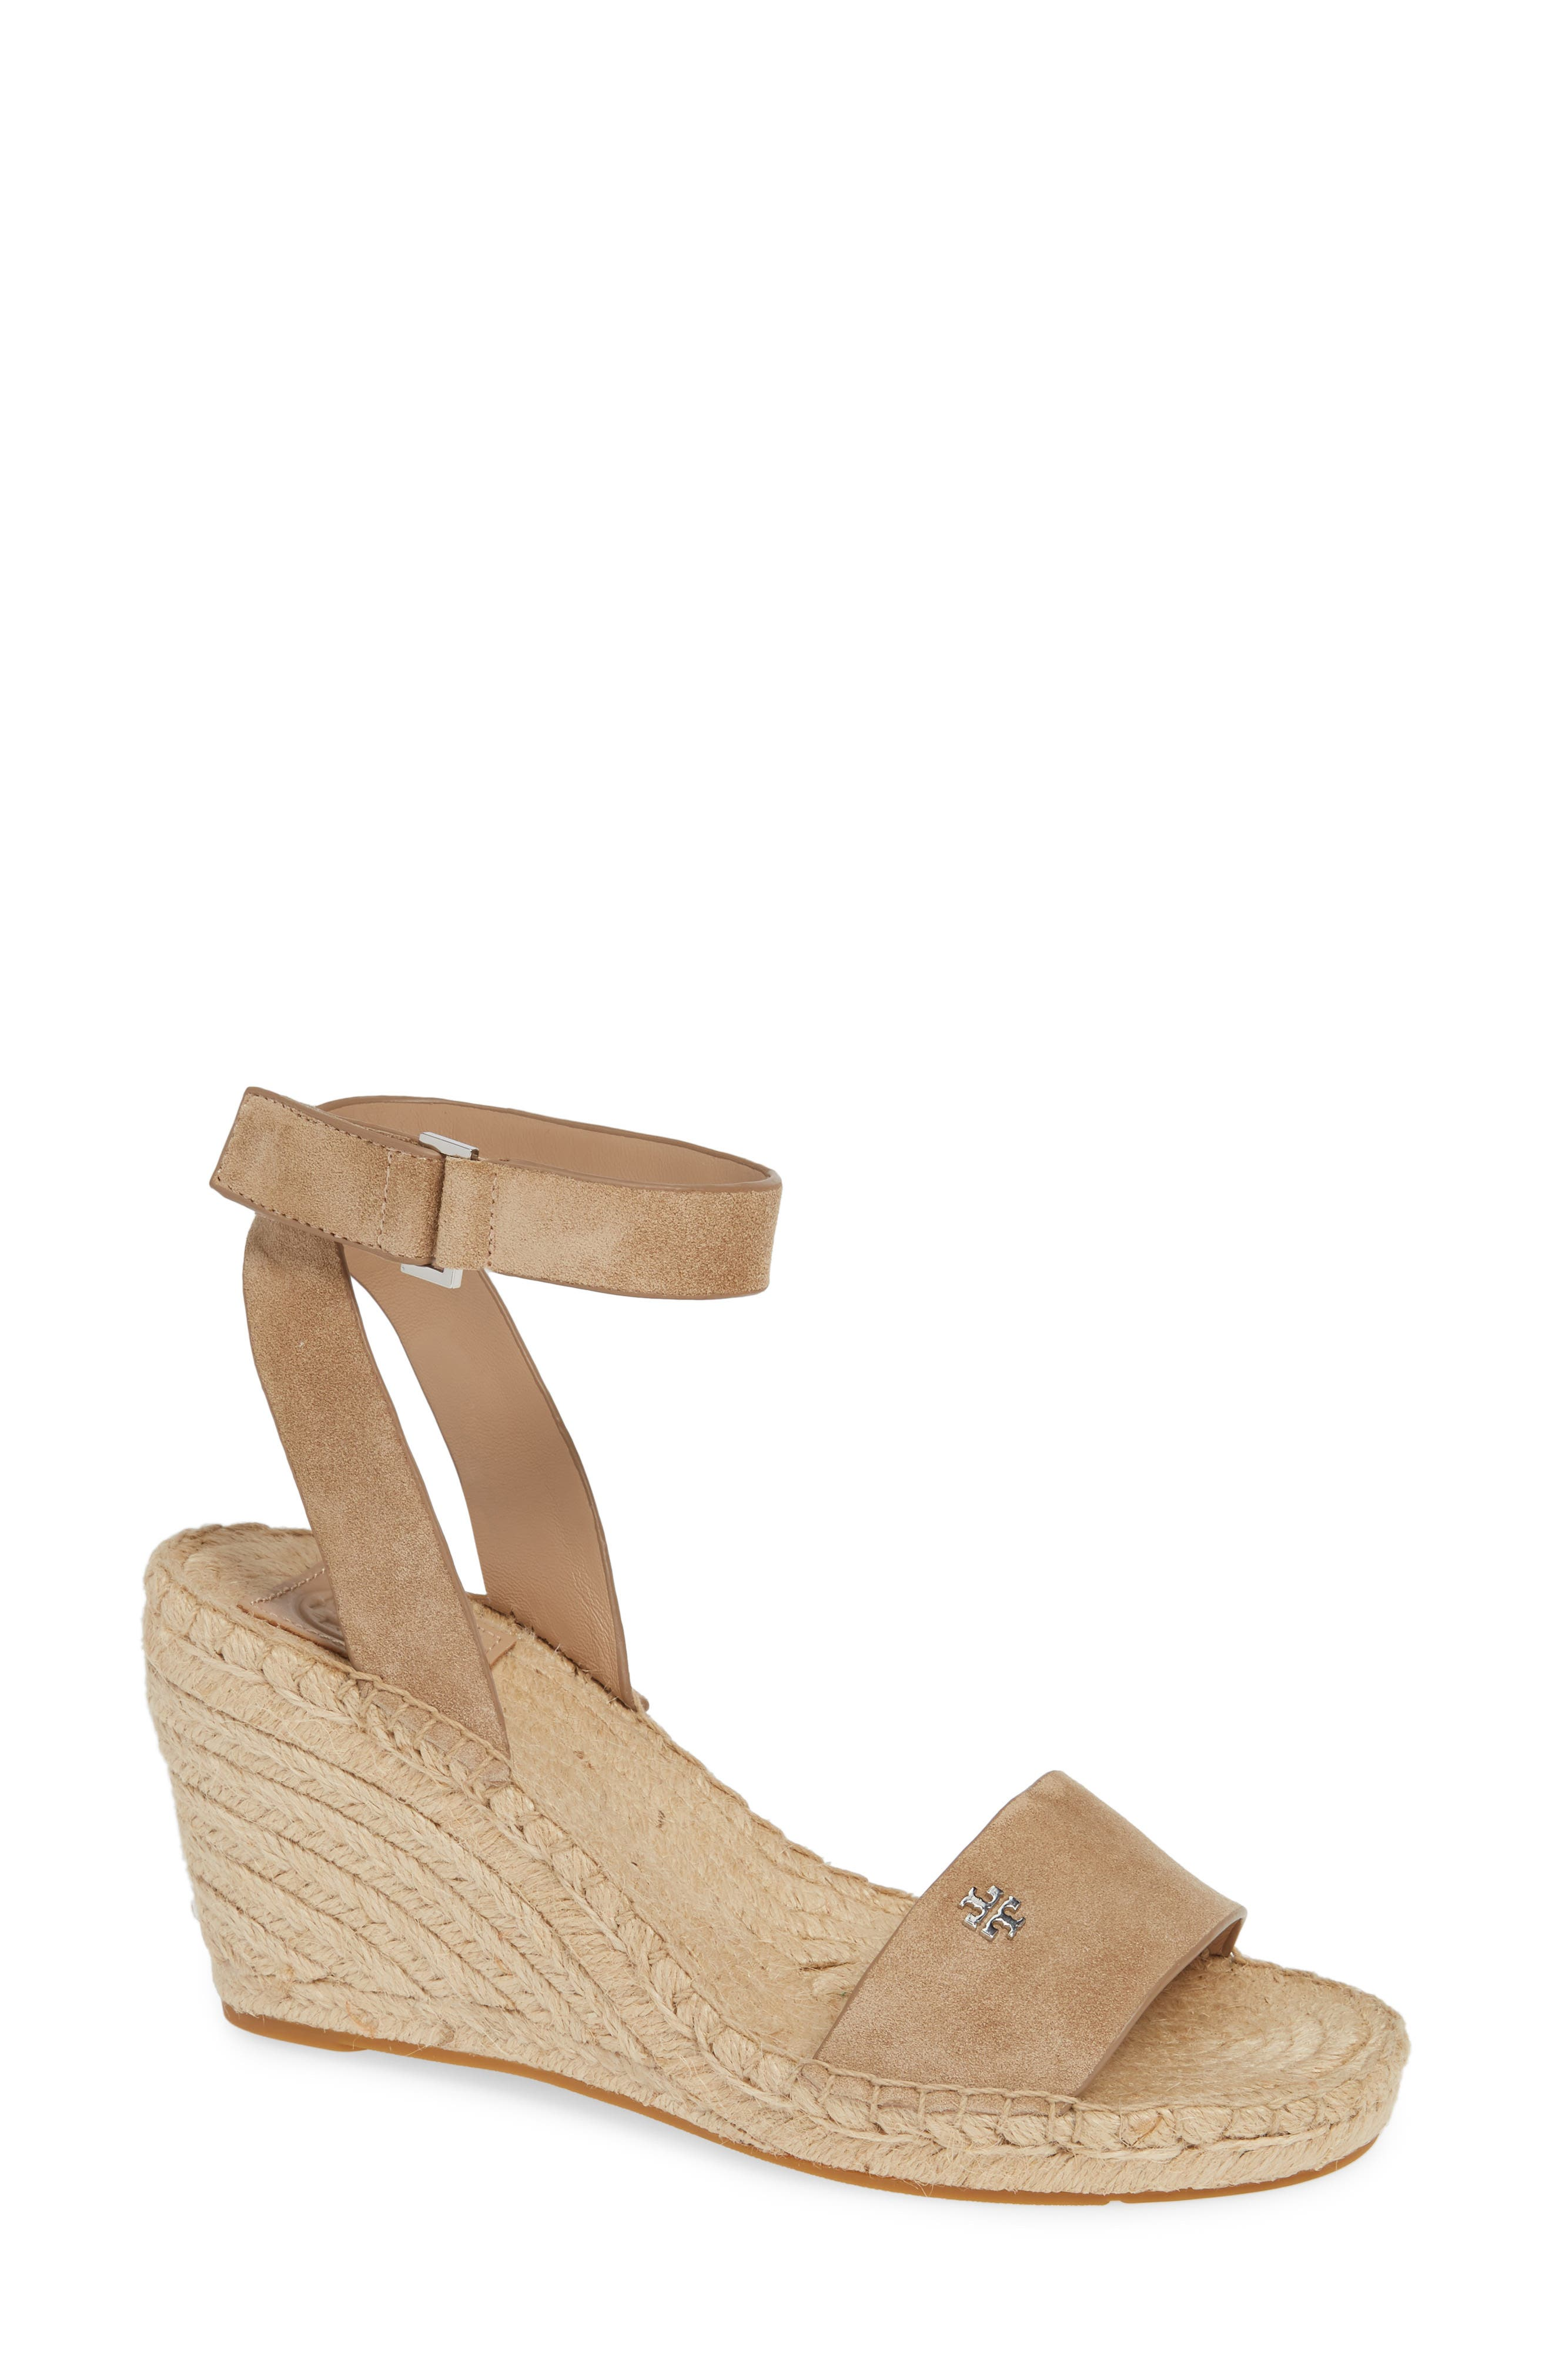 Bima 2 Espadrille,                         Main,                         color, PERFECT SAND